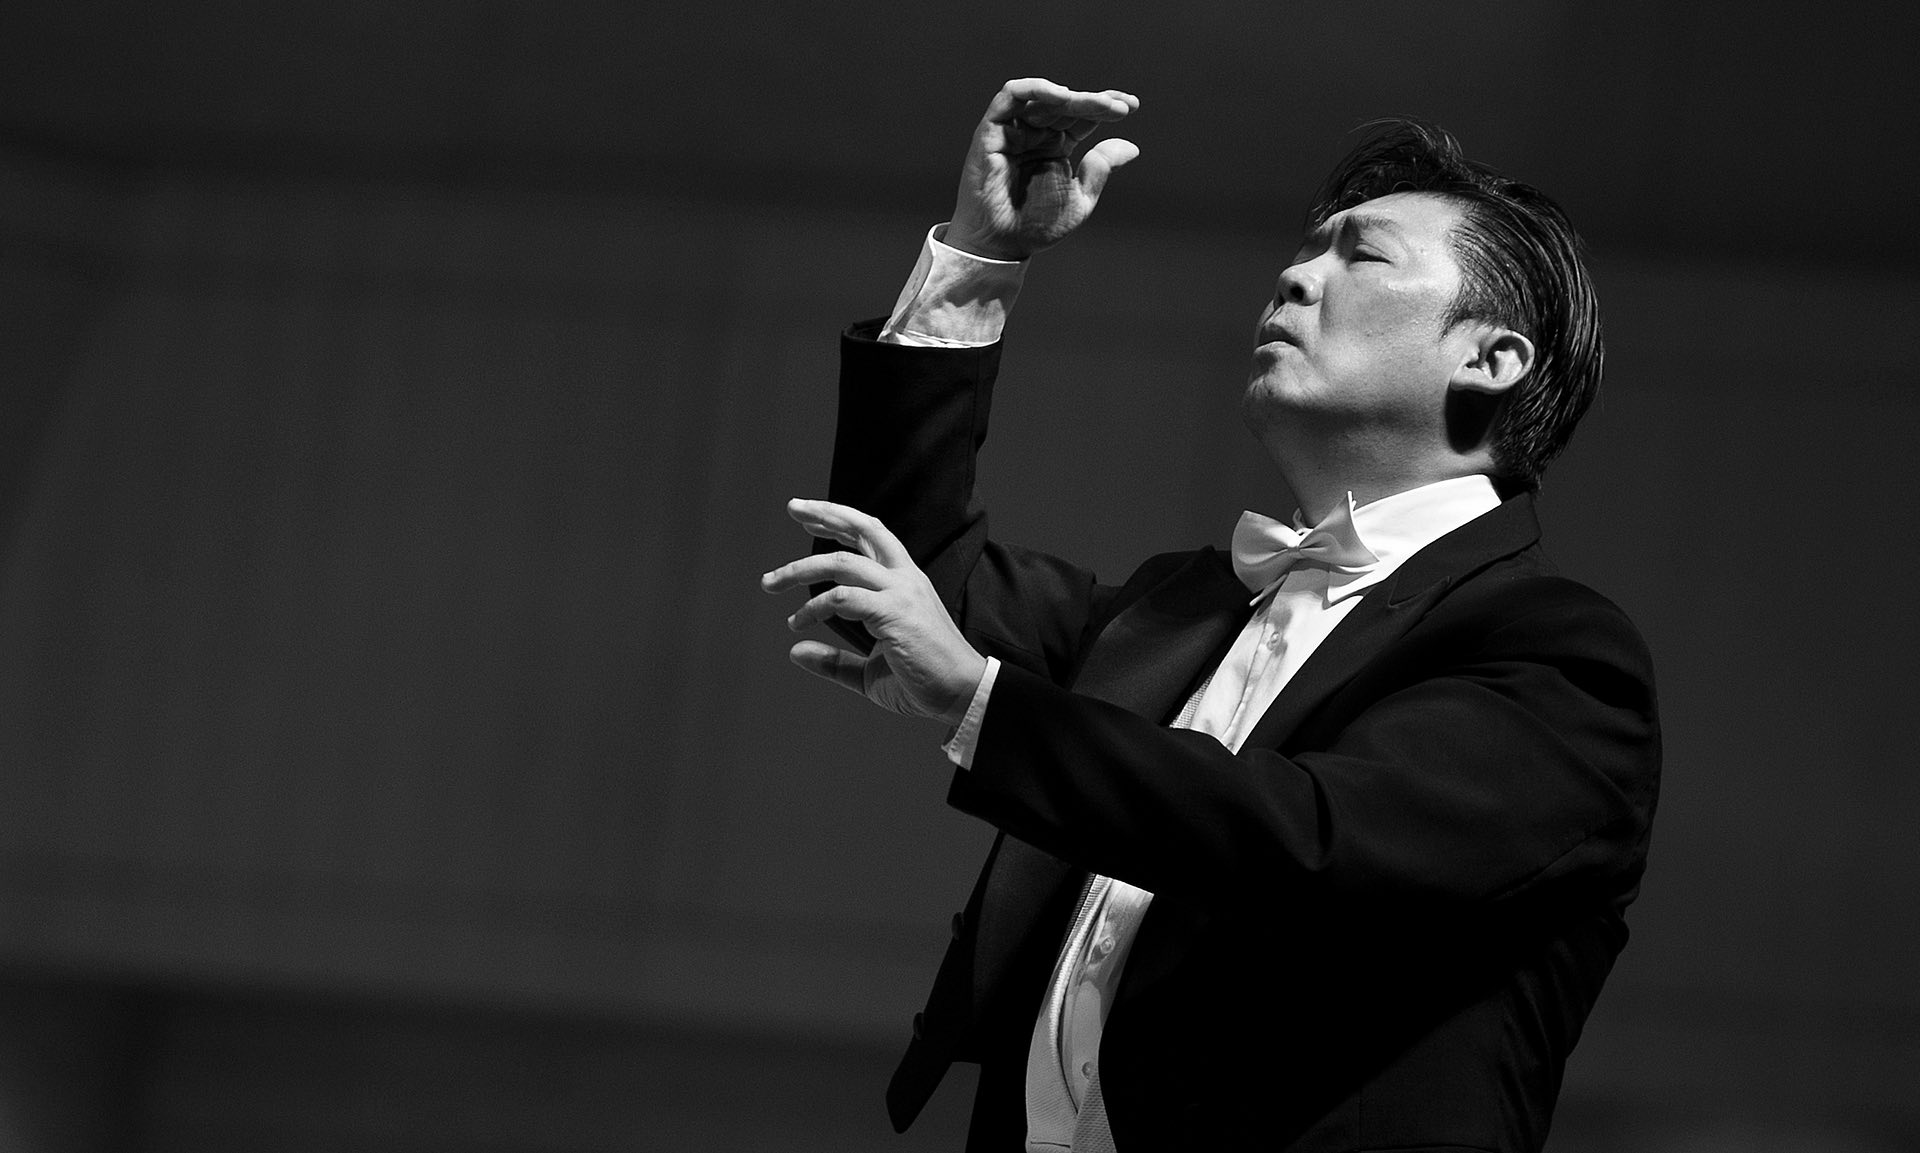 'If I were not a musician, I would still want to connect people' - conductor Long Yu. Photograph: PR